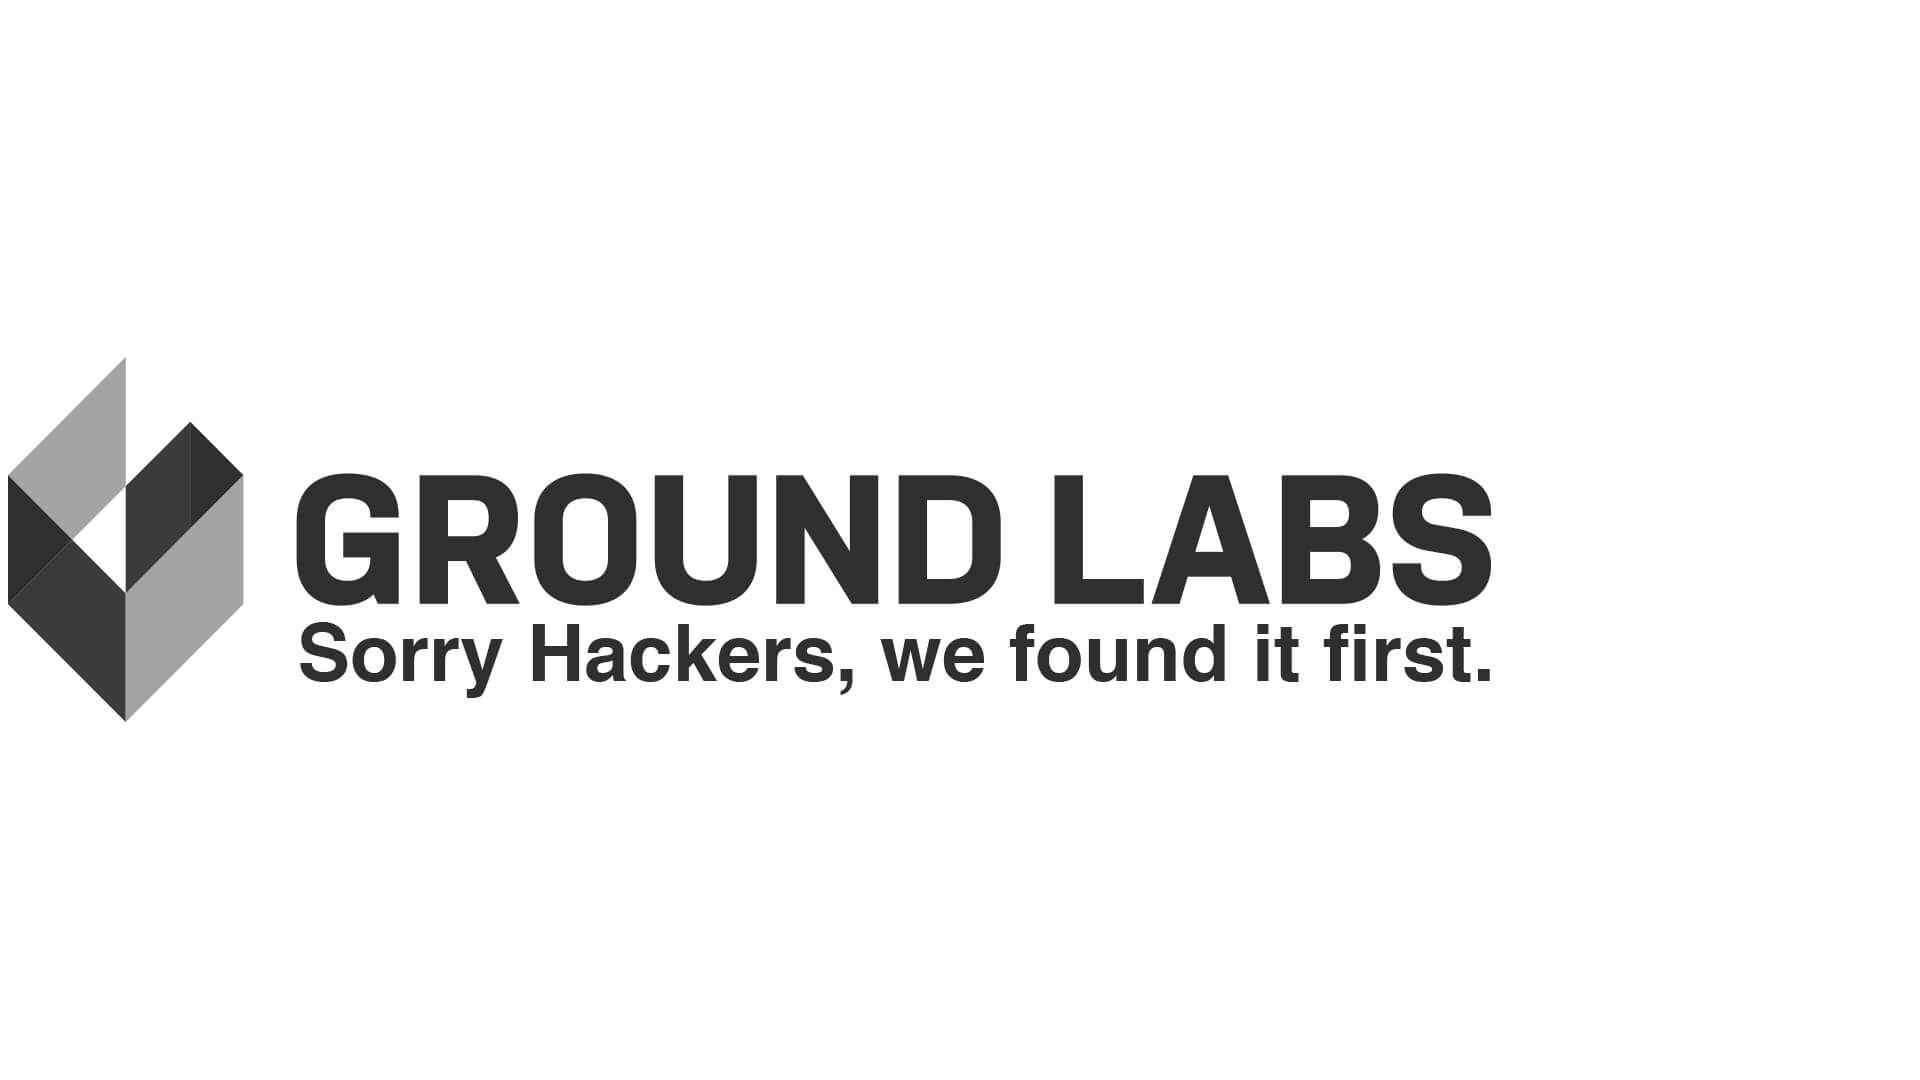 Ground Labs Sensitive Data Discovery and Security